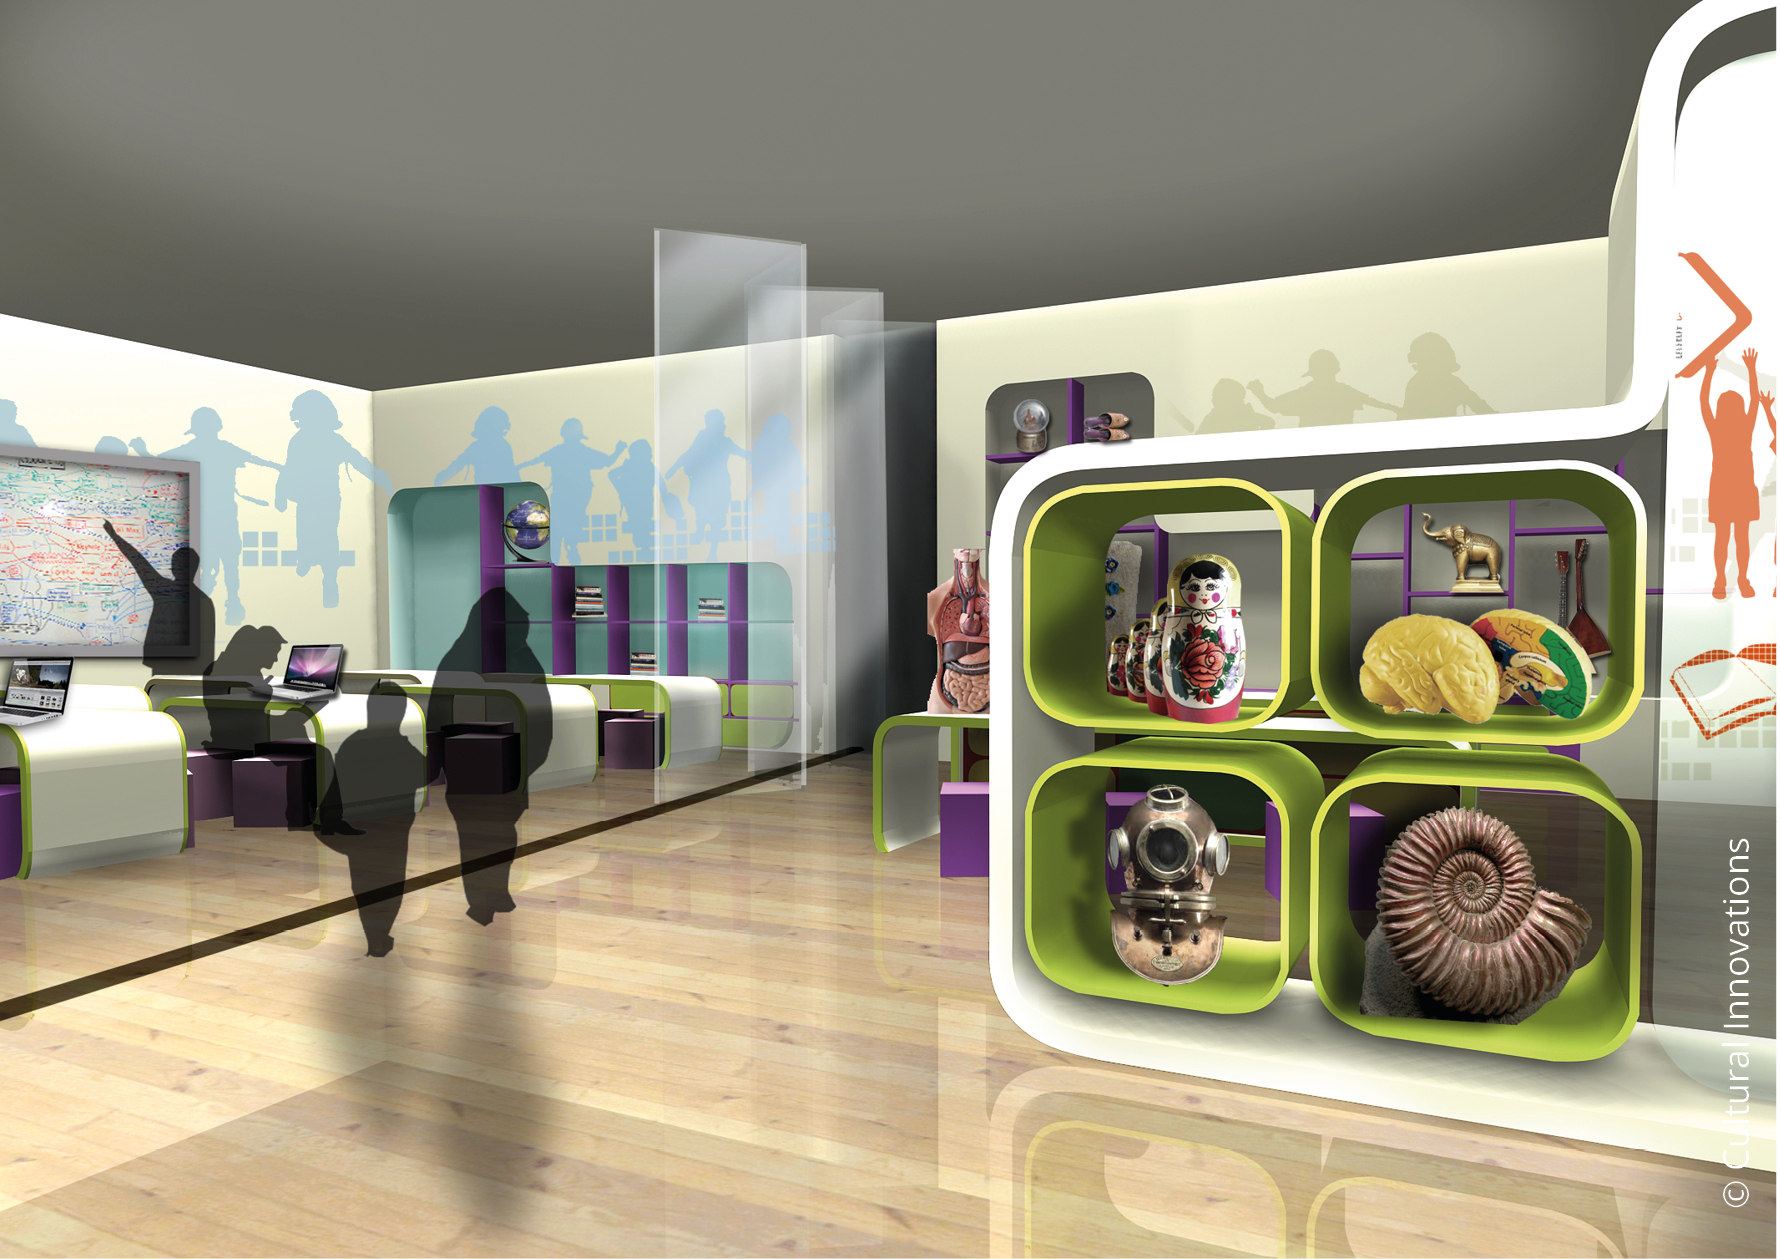 Children's Interactive Museum © Cultural Innovations